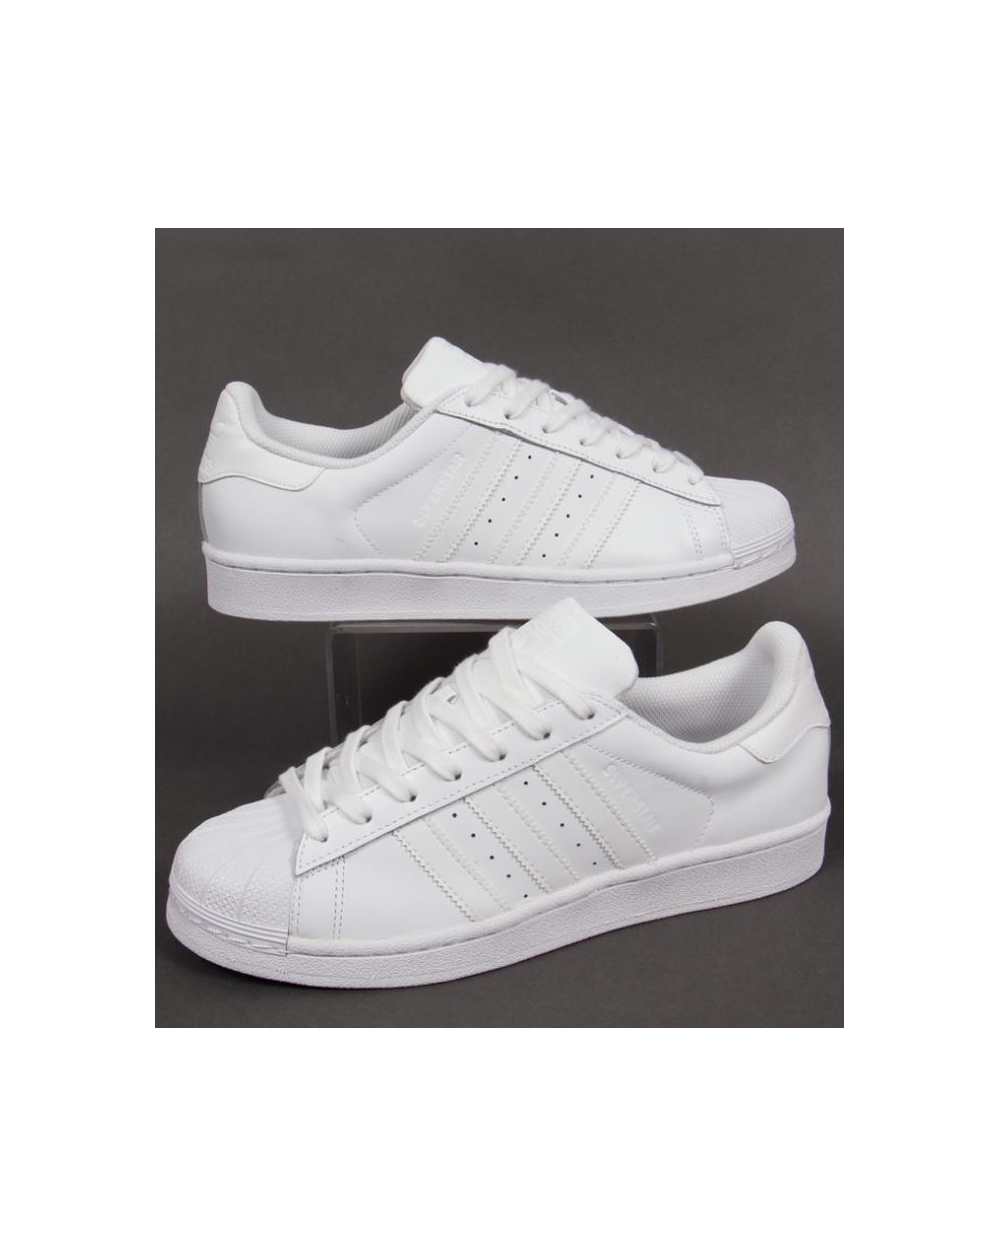 Adidas Superstar White Box